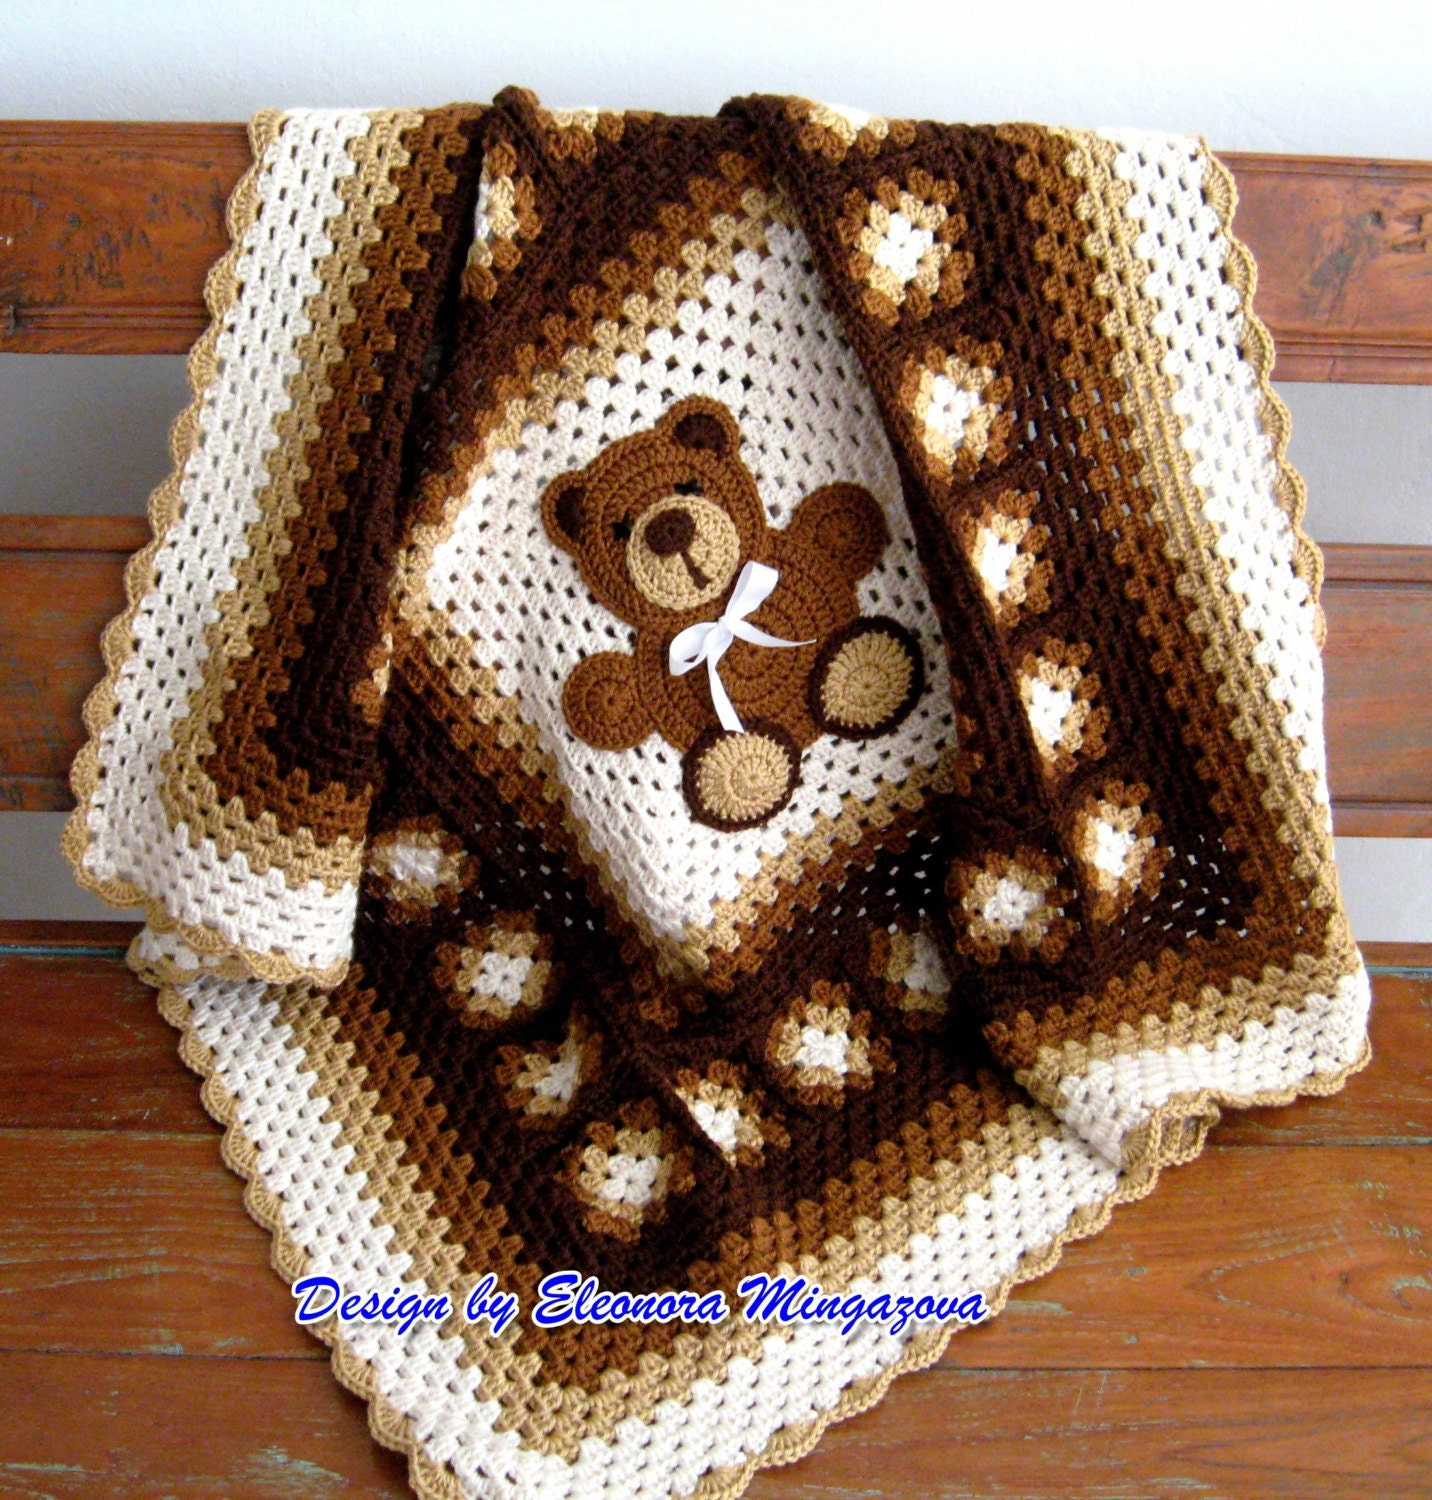 Pdf adorable crochet pattern to make your own crochet teddy bear pdf adorable crochet pattern to make your own crochet teddy bear blanket afghan throw bankloansurffo Choice Image